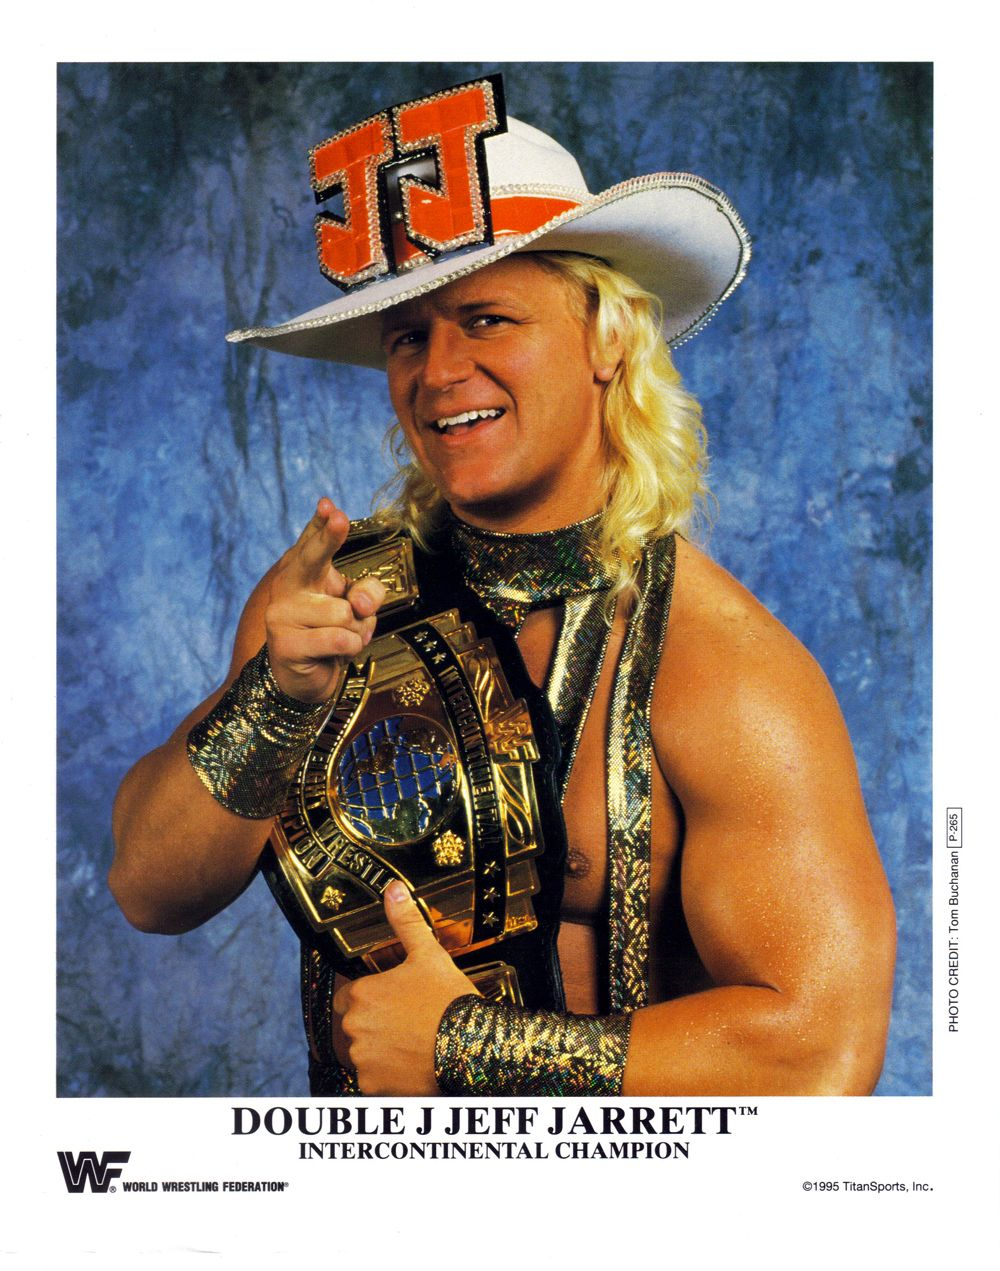 Jeff Jarrett to be inducted into WWE Hall of Fame class of 2018 7798a669c6d67b72cd68f7fea7a1b31d